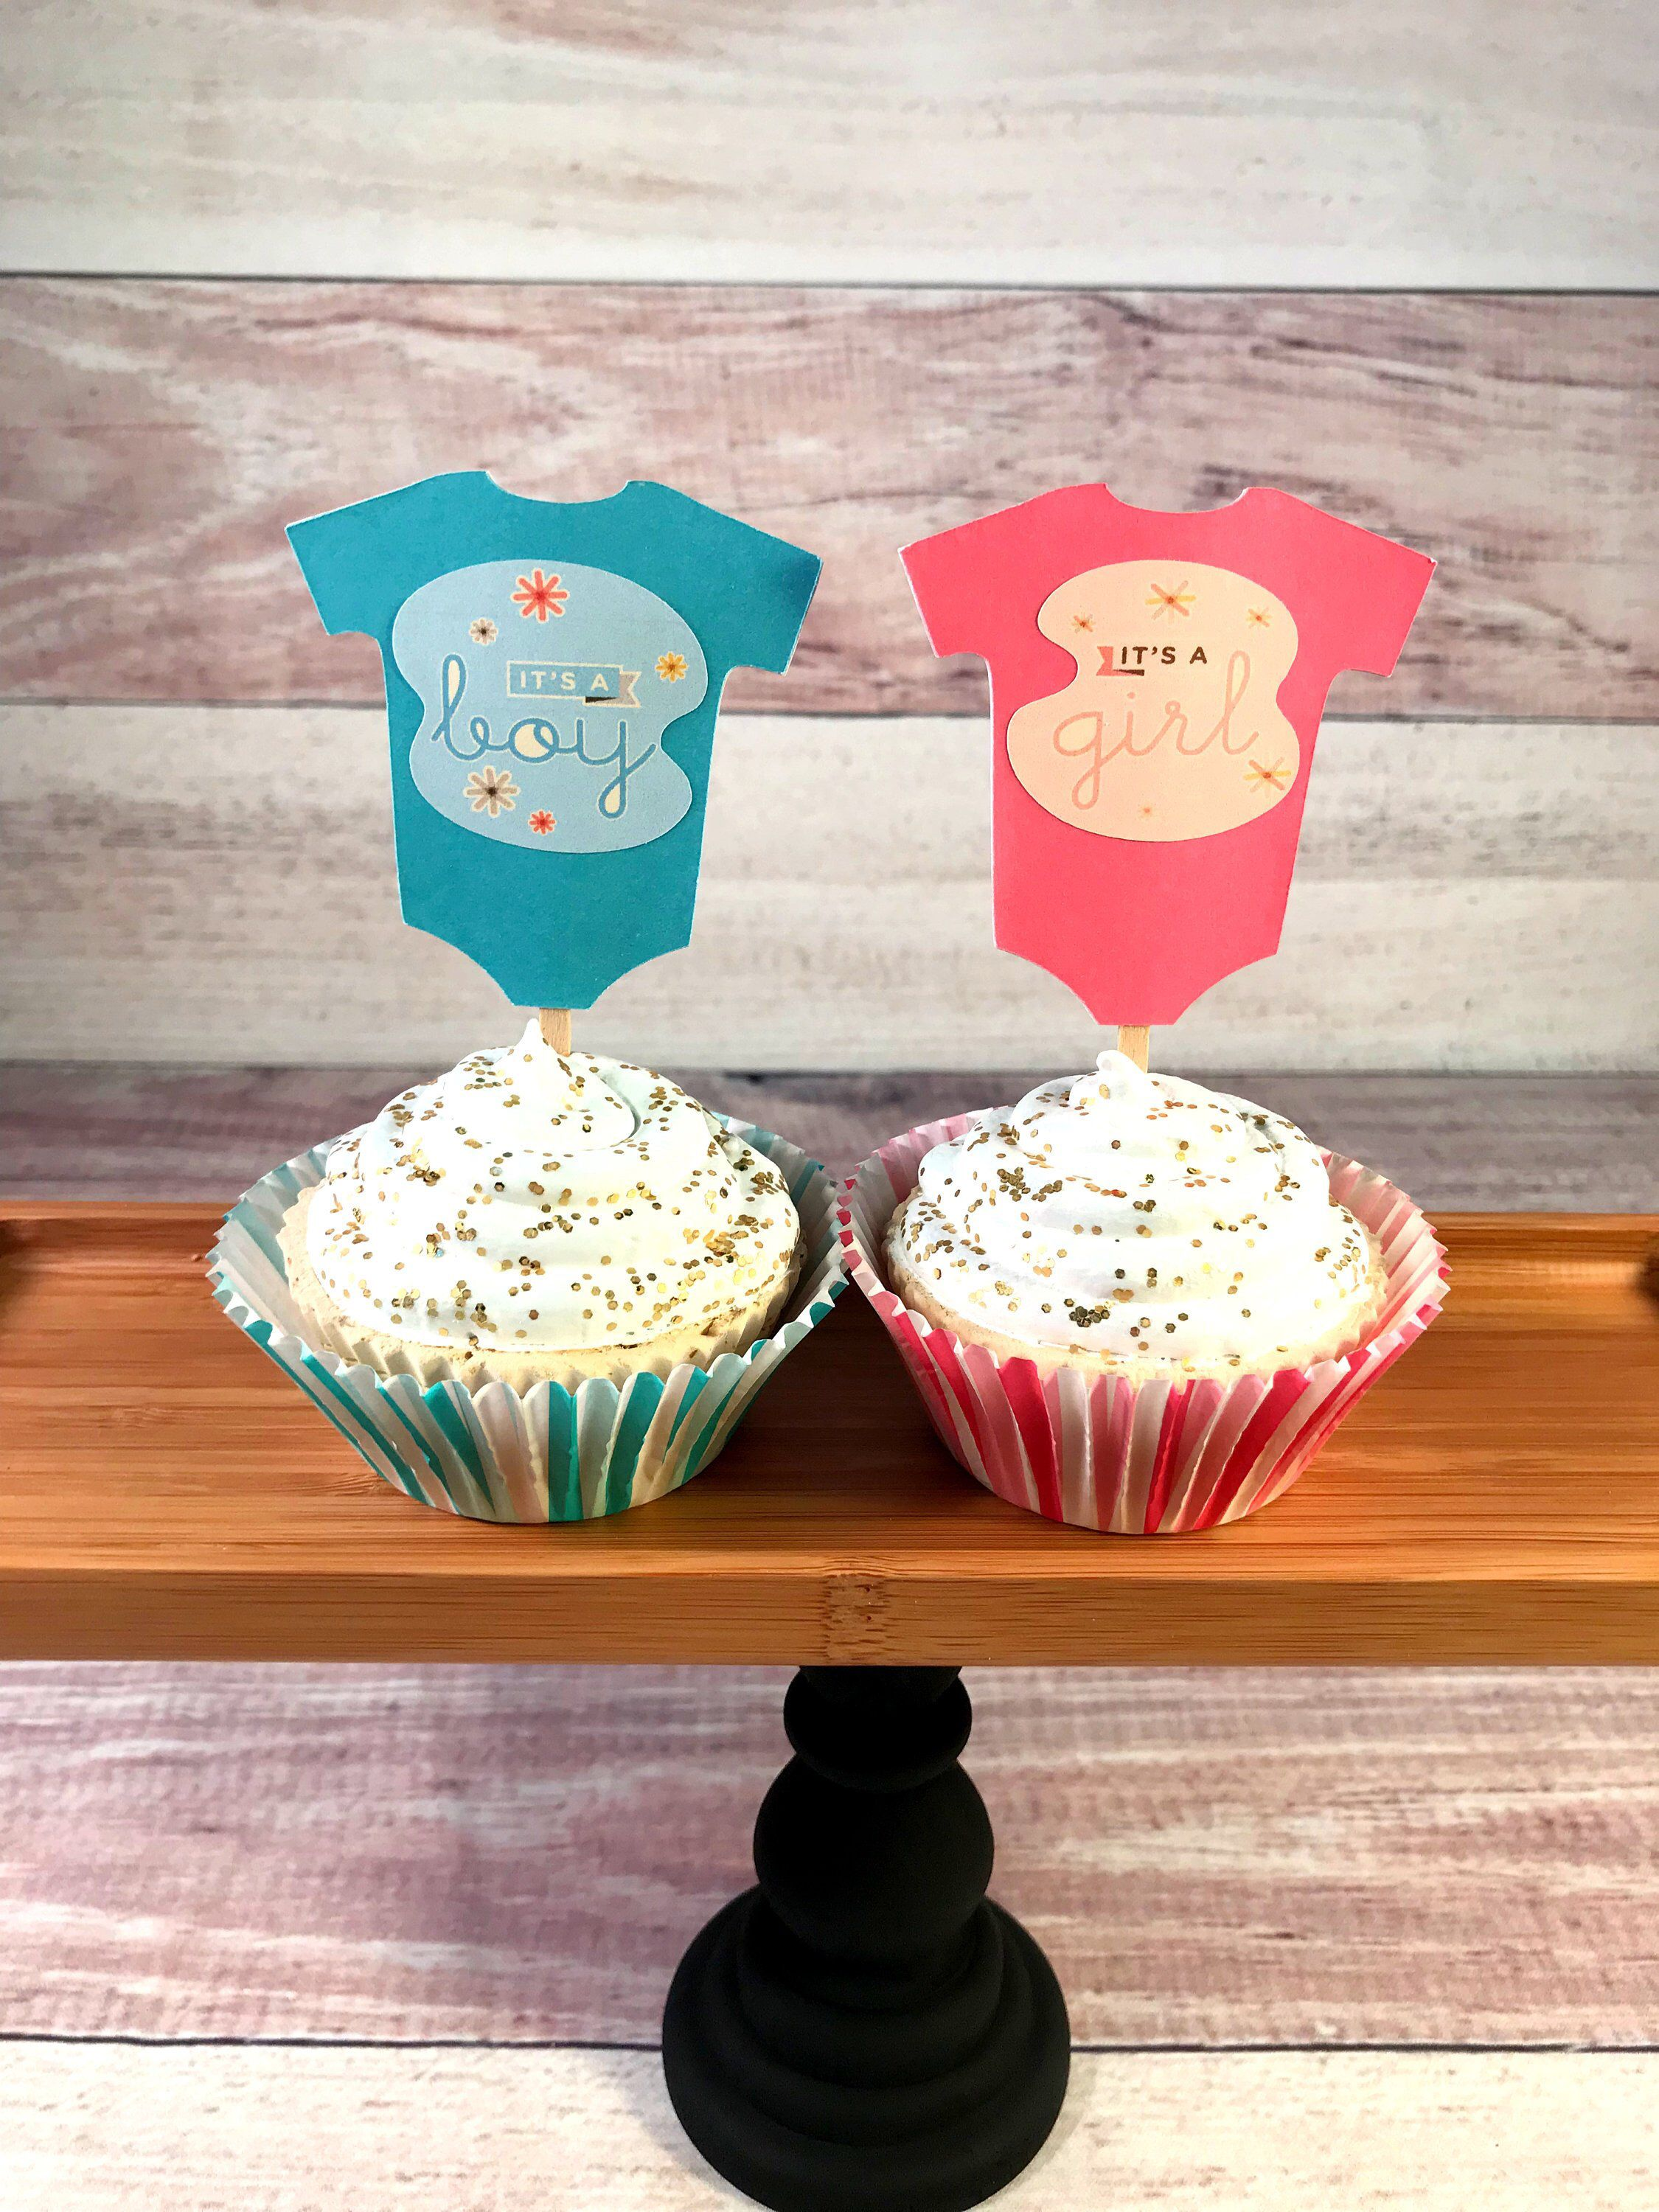 71c4001c08 Baby Shower Cupcake Toppers, Baby Body Suit Cupcake Toppers, Baby One Piece  Cupcake Topperss